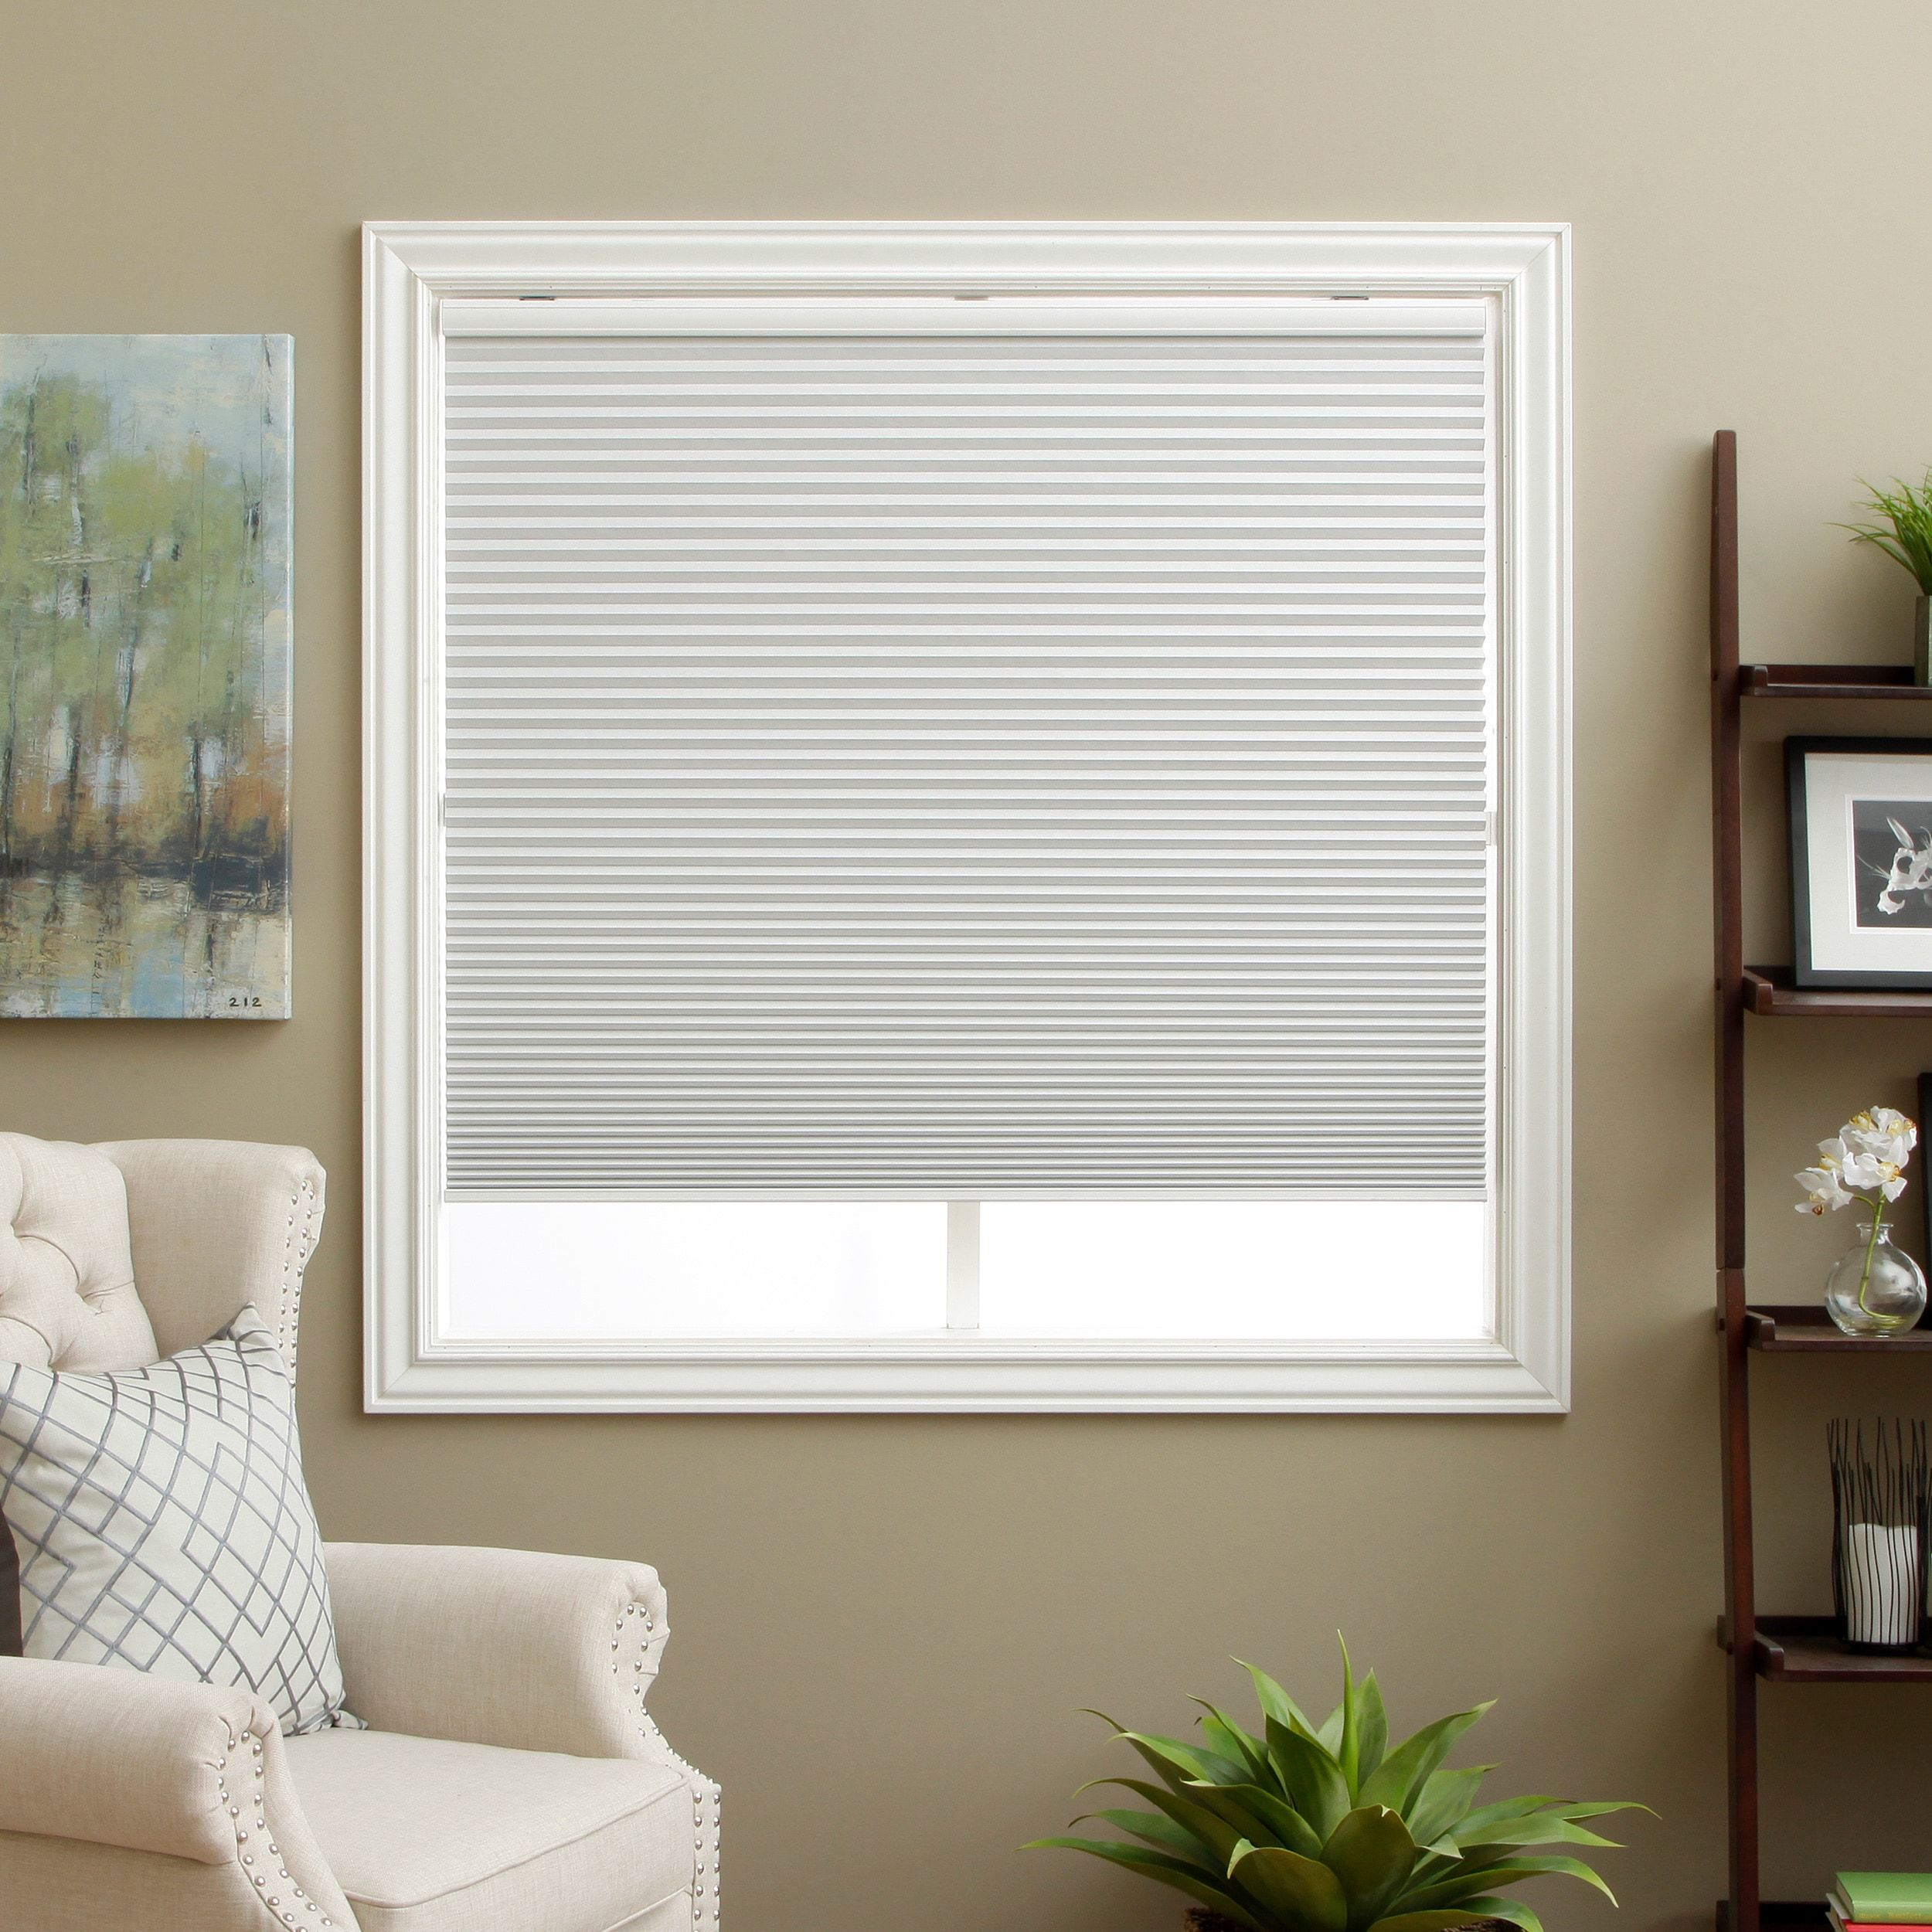 Arlo Blinds White Room Darkening Cordless Cellular Shades 18 Inch Width X 60 Height